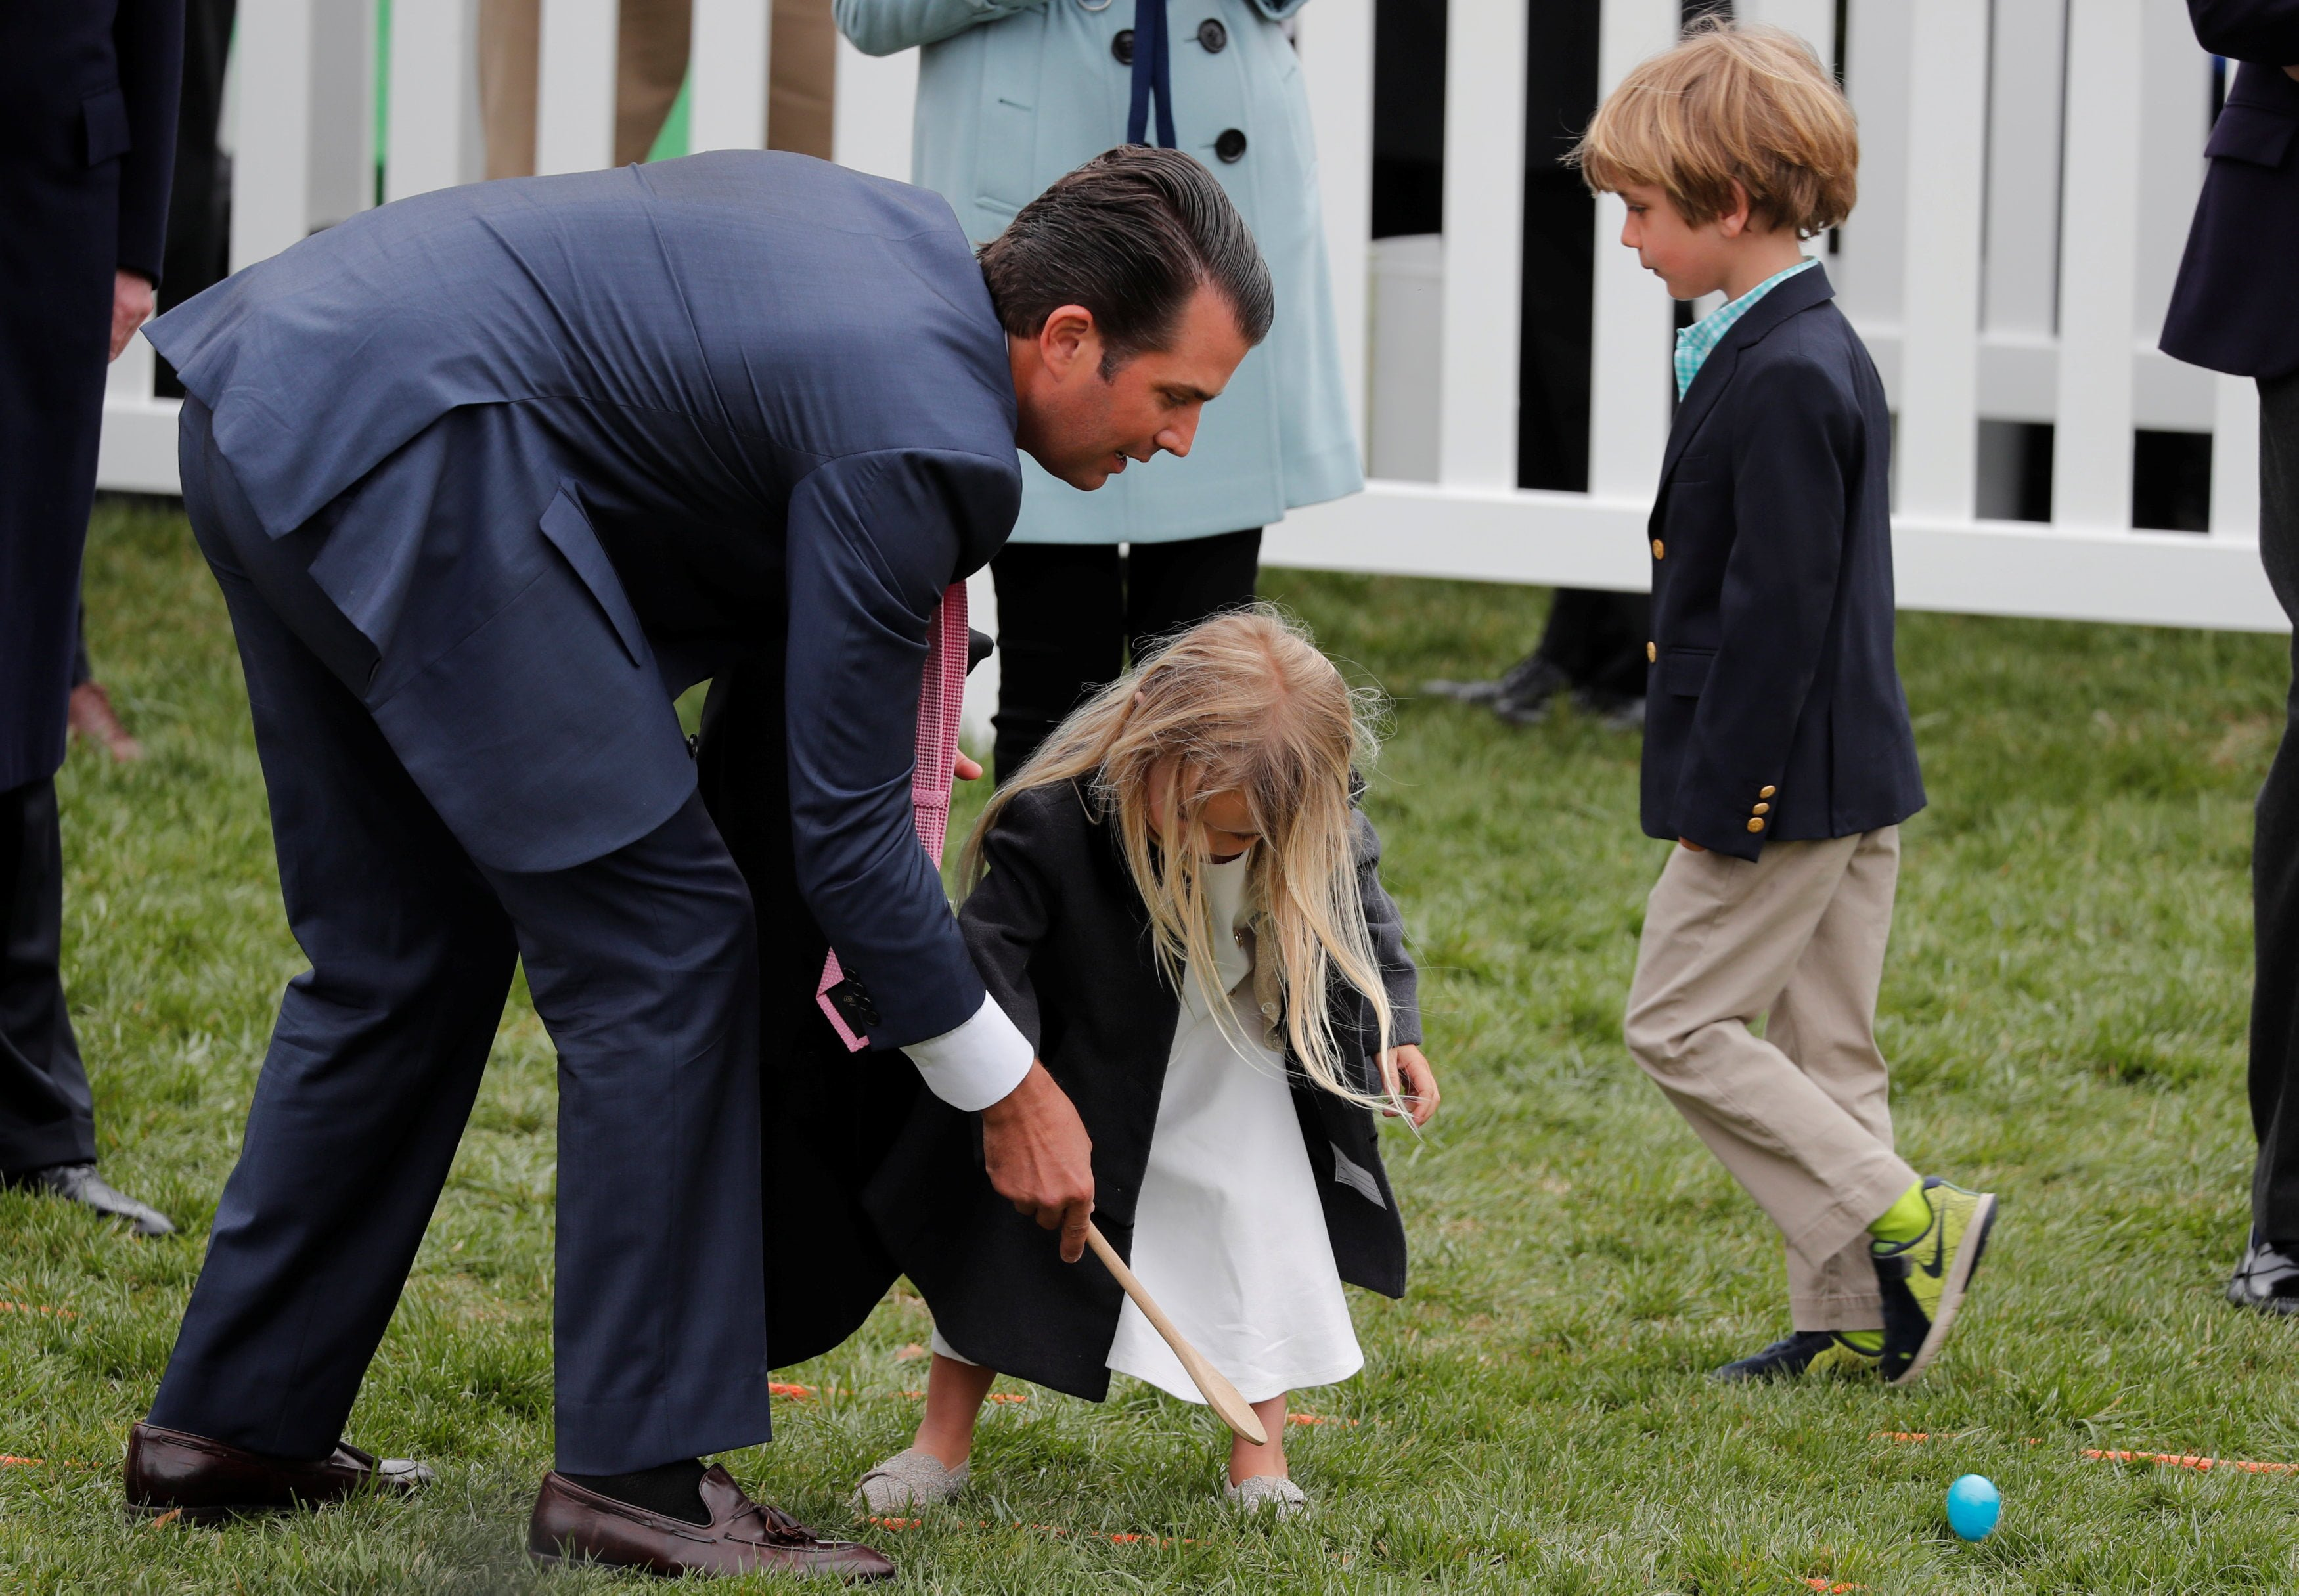 Donald Trump Jr helps his daughter Chloe roll an egg during the annual White House Easter Egg Roll on the South Lawn of the White House in Washington